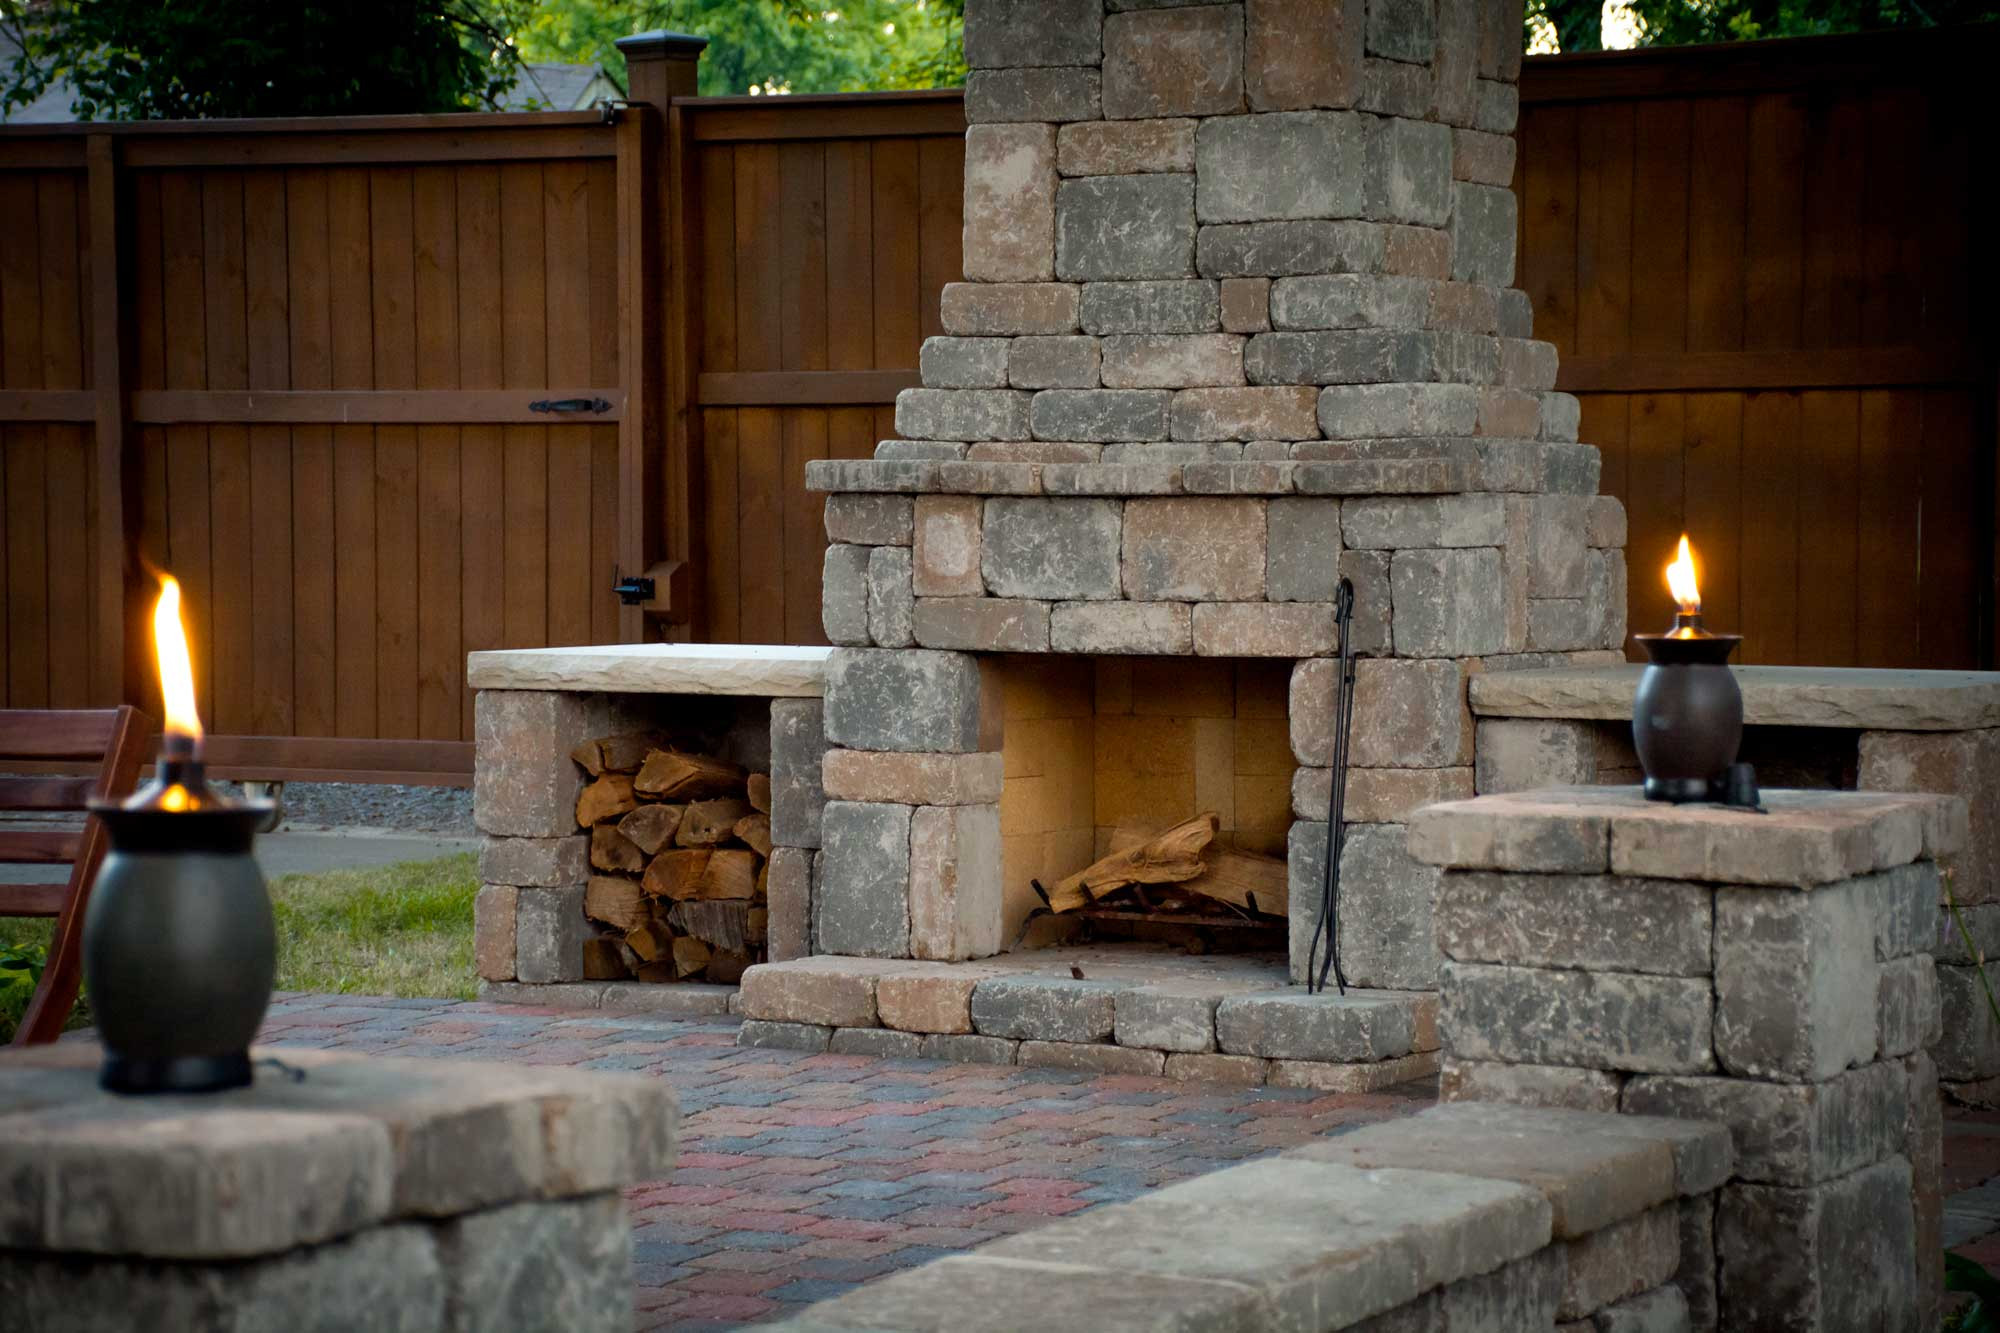 DIY Fireplace Outdoor  DIY outdoor Fremont fireplace kit makes hardscaping simple